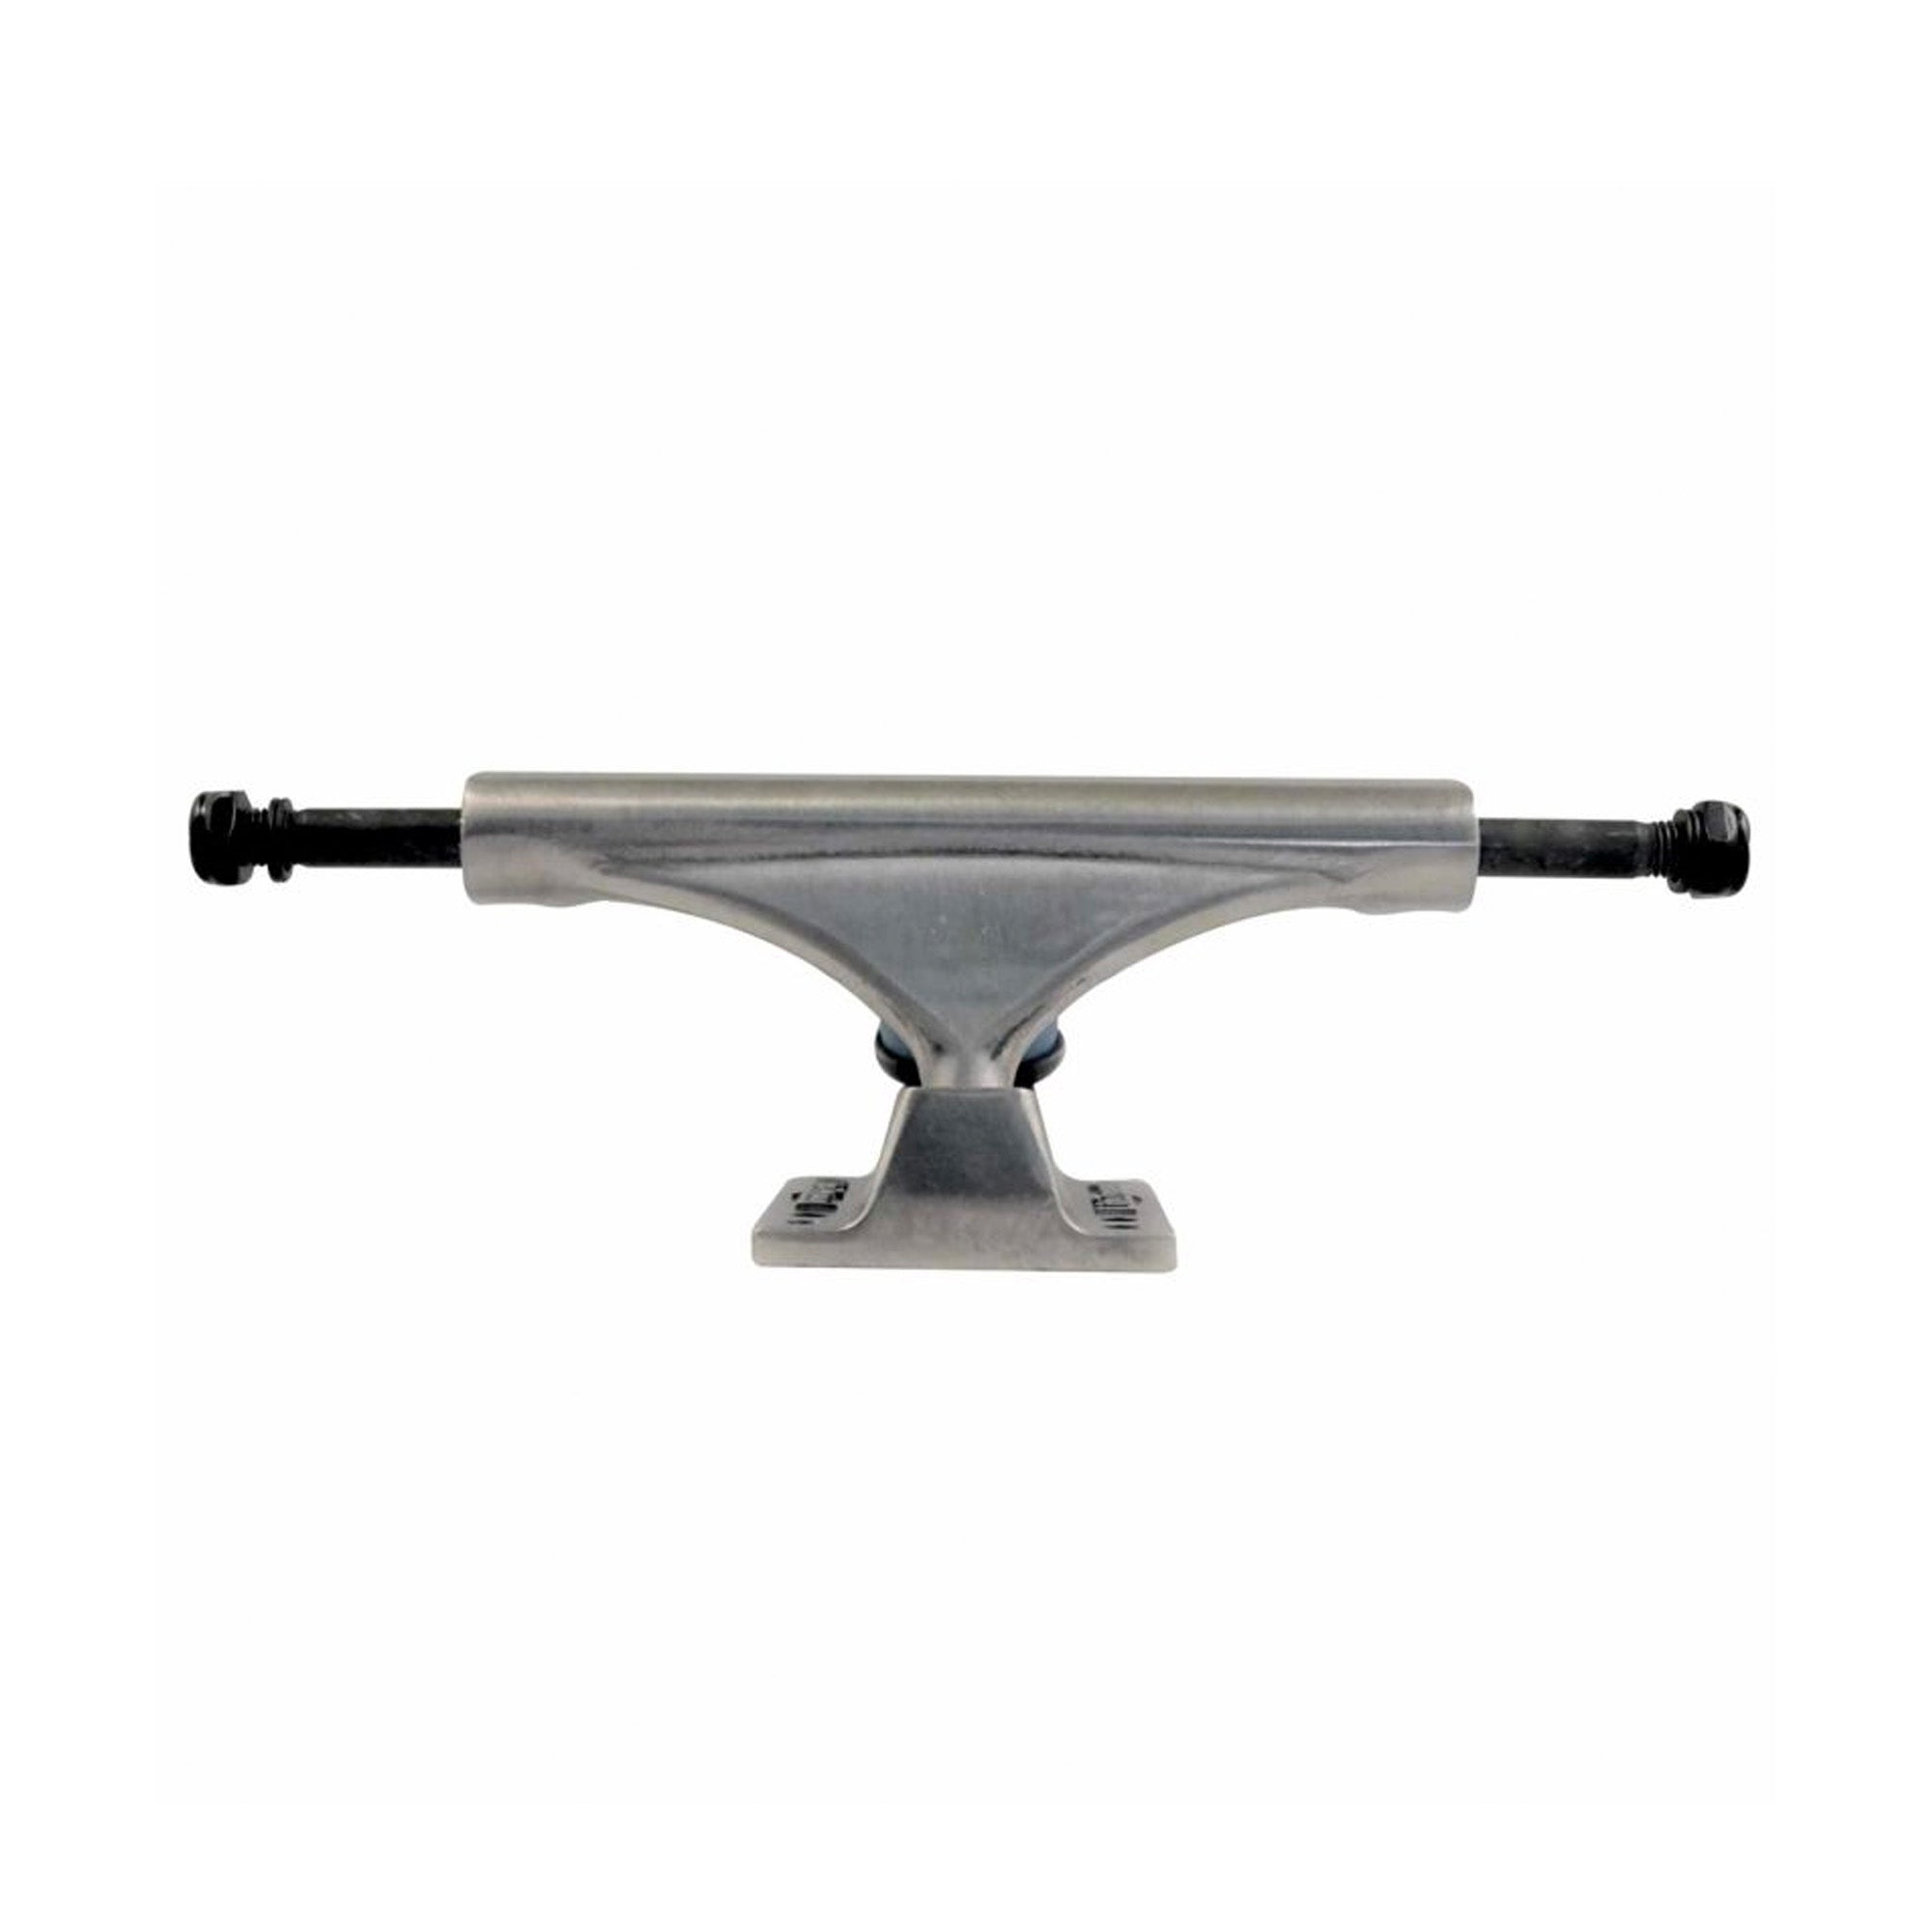 Litezpeed Truck Set 5.25 - Polished Metal